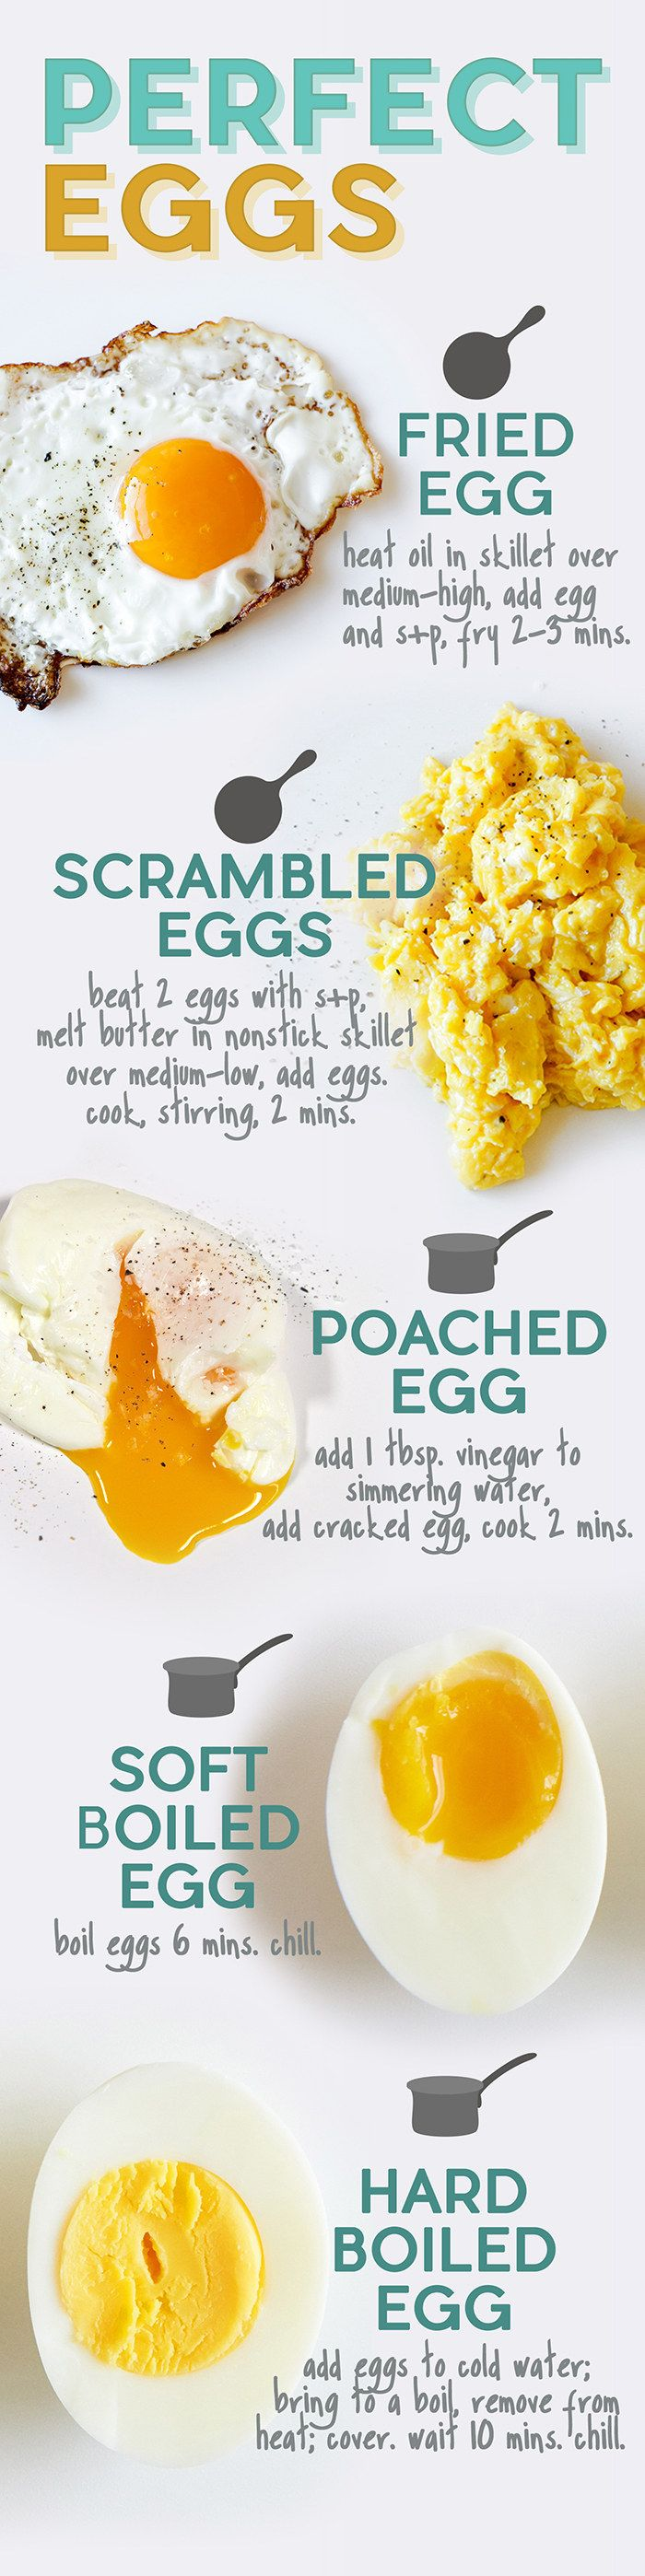 How To Never Fuck Up Your Poached Eggs Again